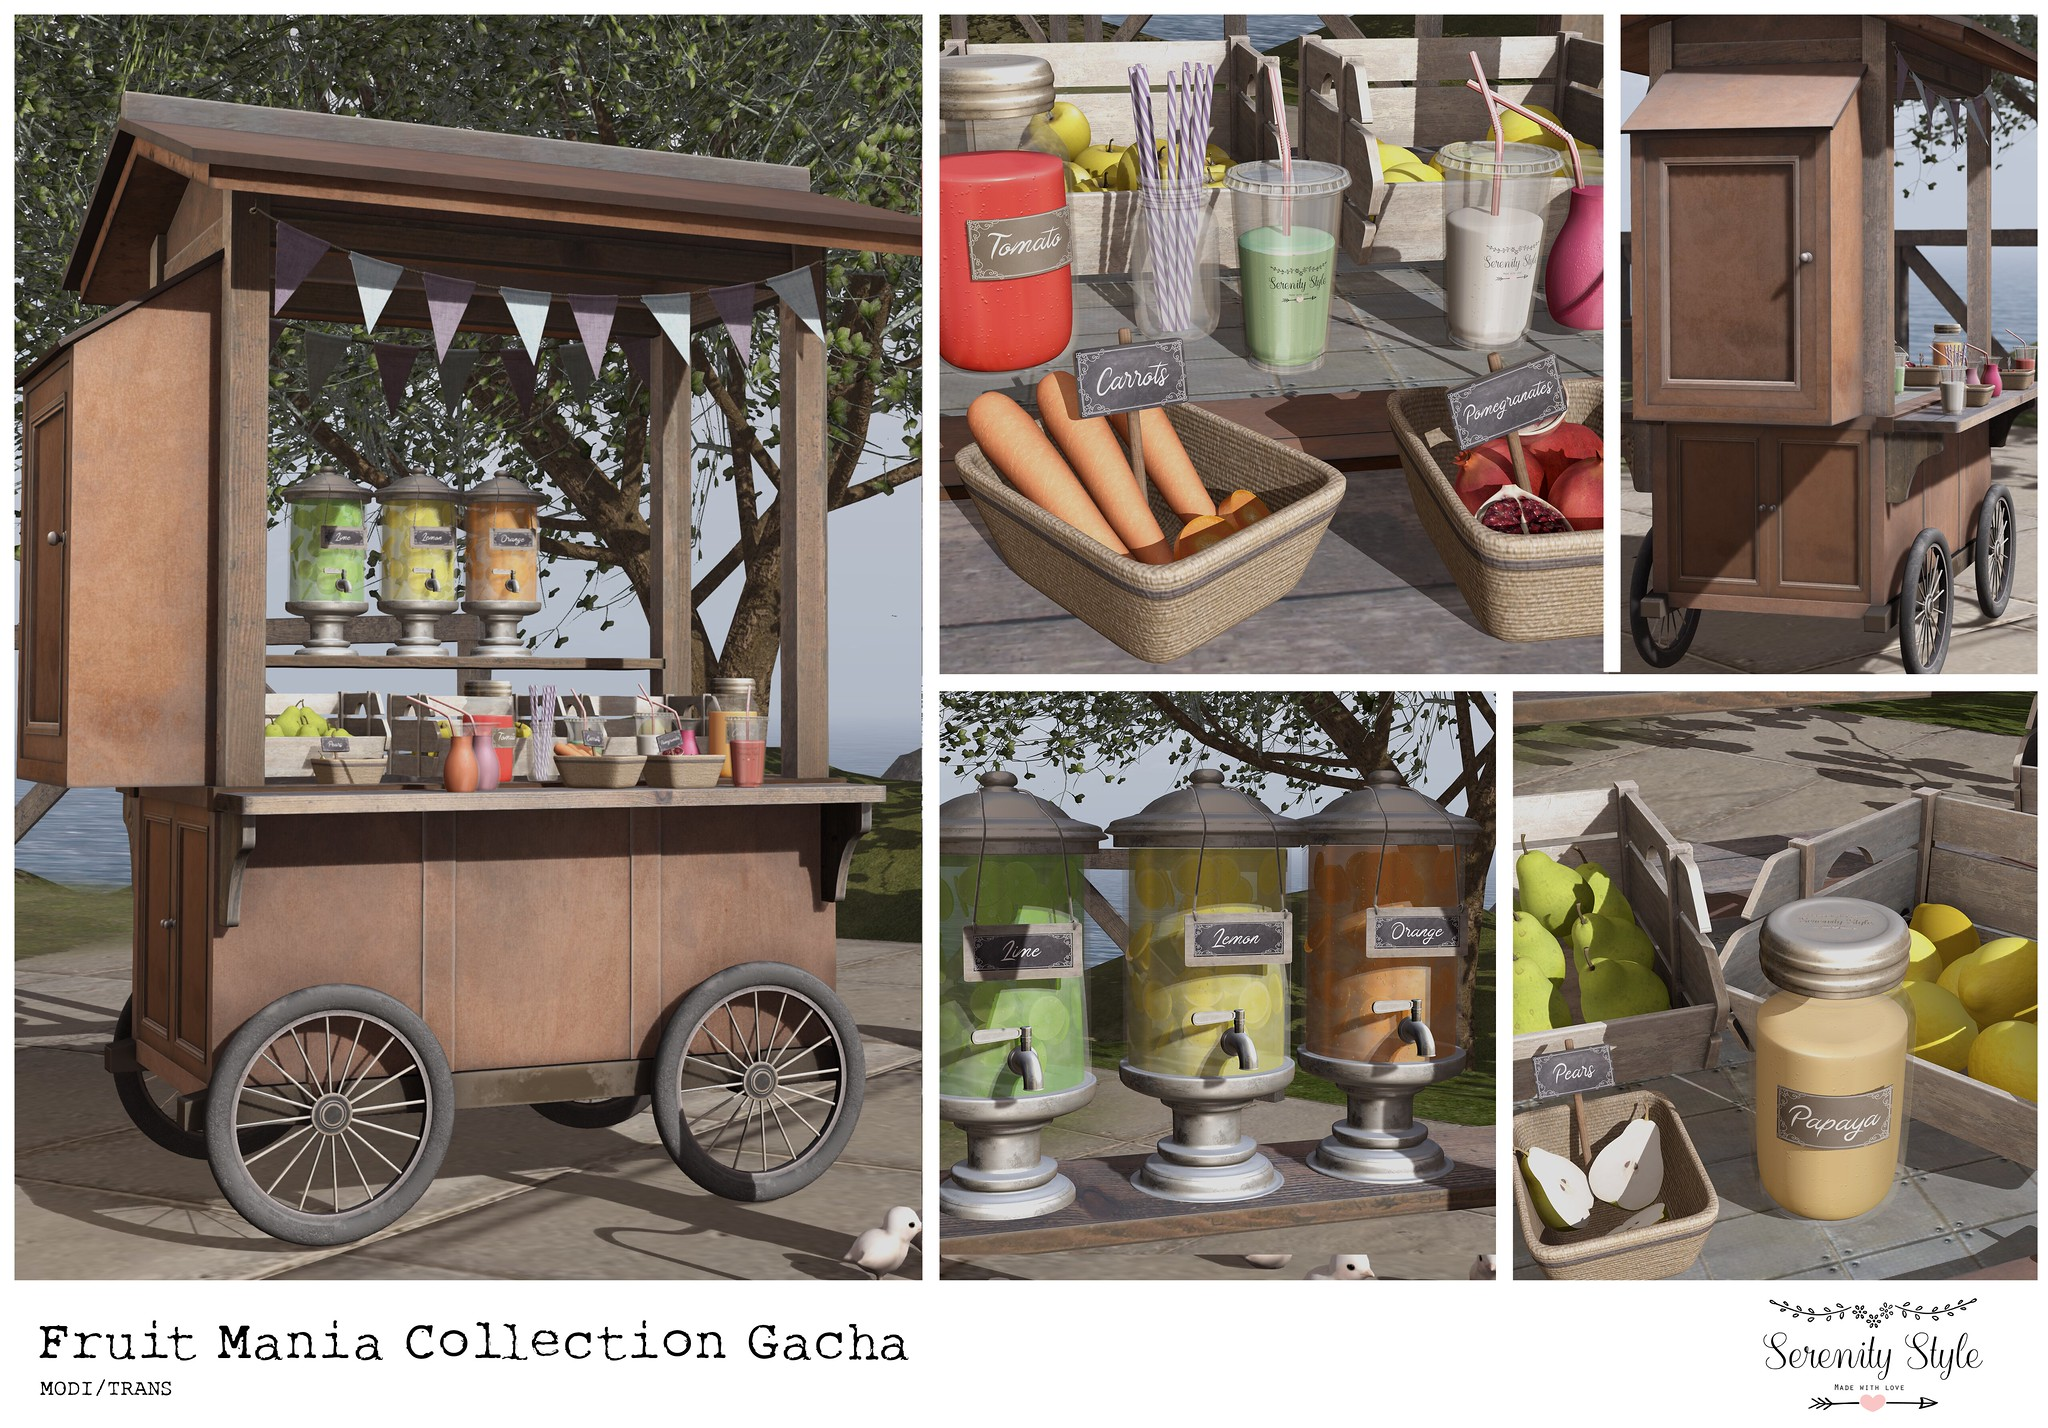 Serenity Style- Fruit Mania Collection ad